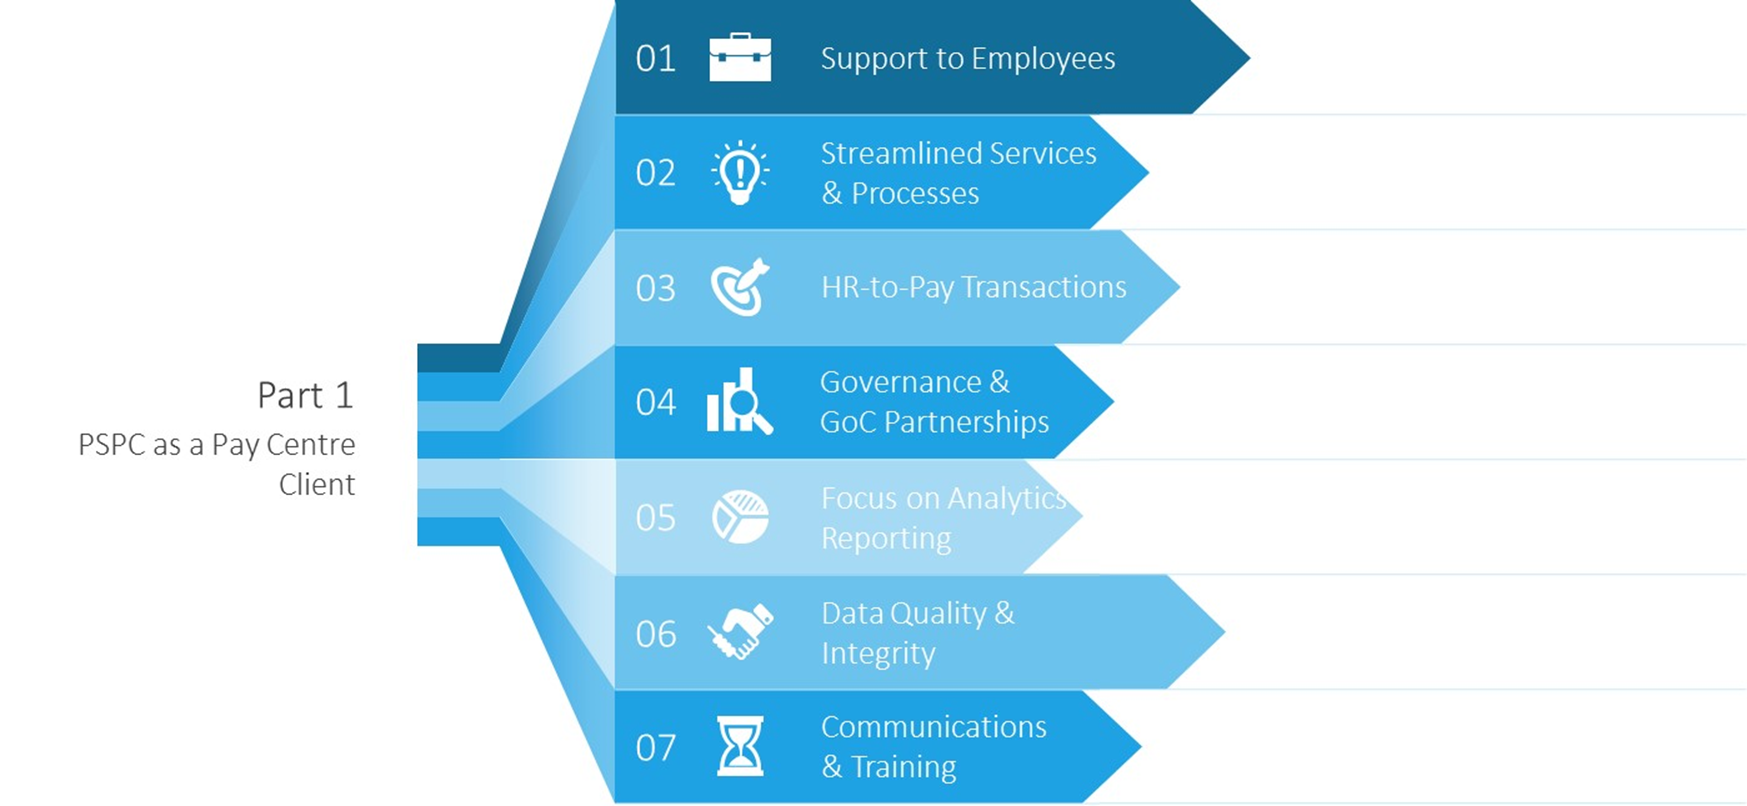 Infographic outlining the 7 categories of effort that PSPC, as a Pay Centre client, has contributed toward HR-to-pay stabilization. The name of each category and descriptions of related efforts follow the infographic.